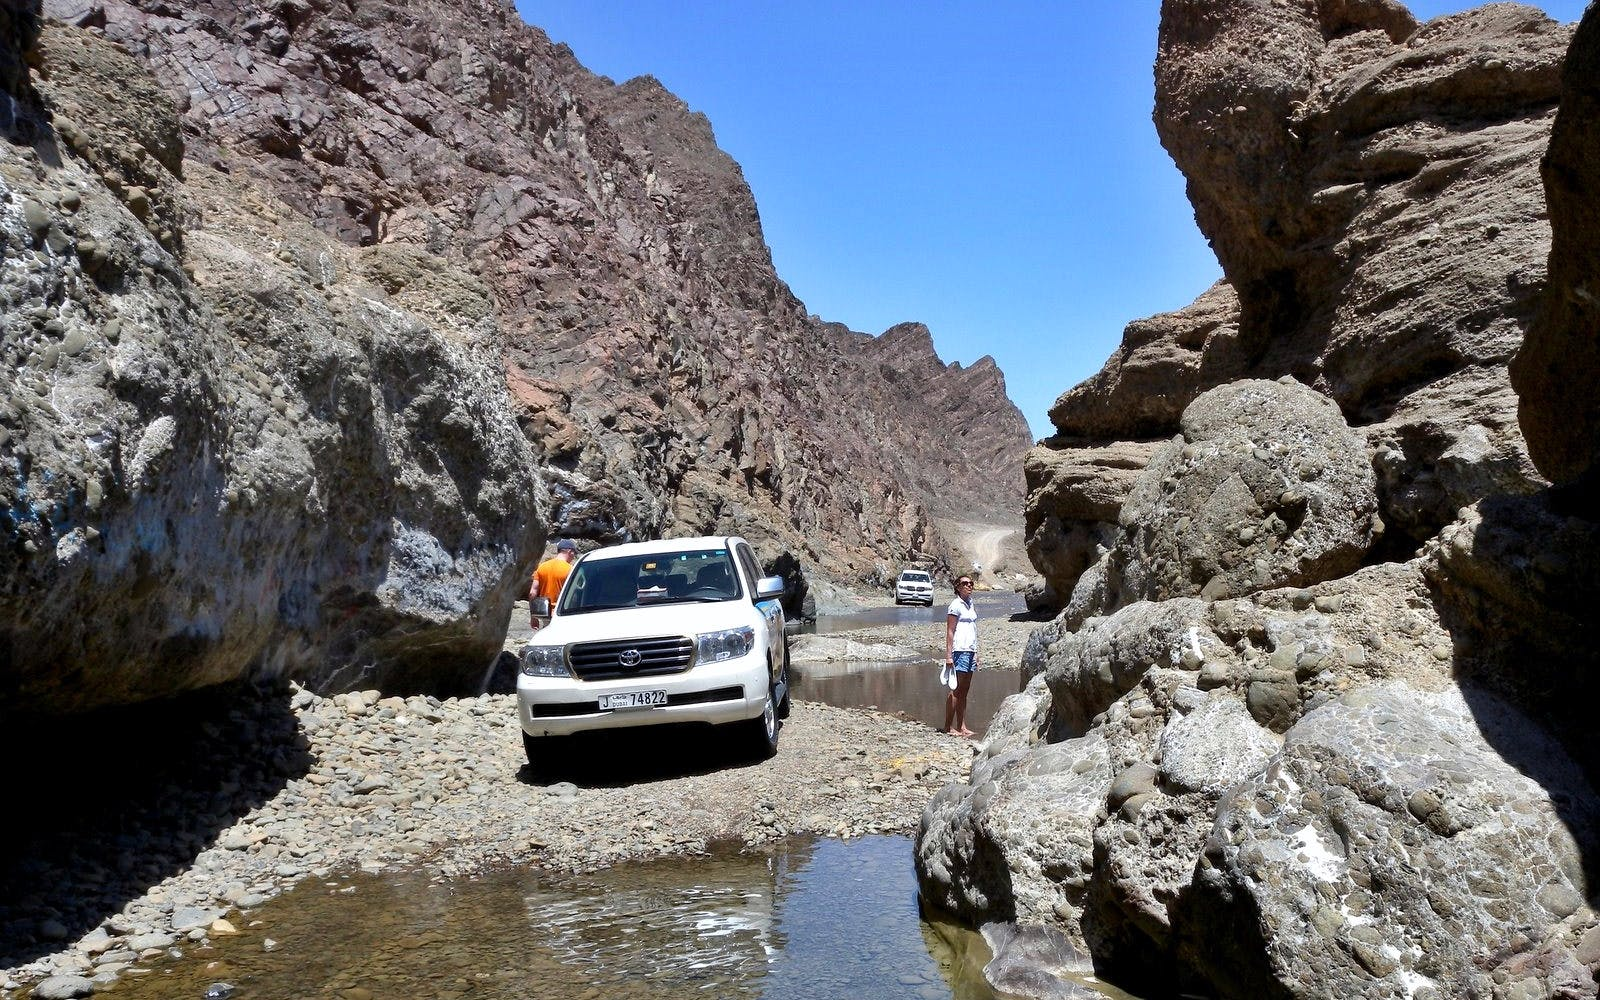 Hatta Heritage Village UAE Desert & Mountains 4WD Tour with Lunch